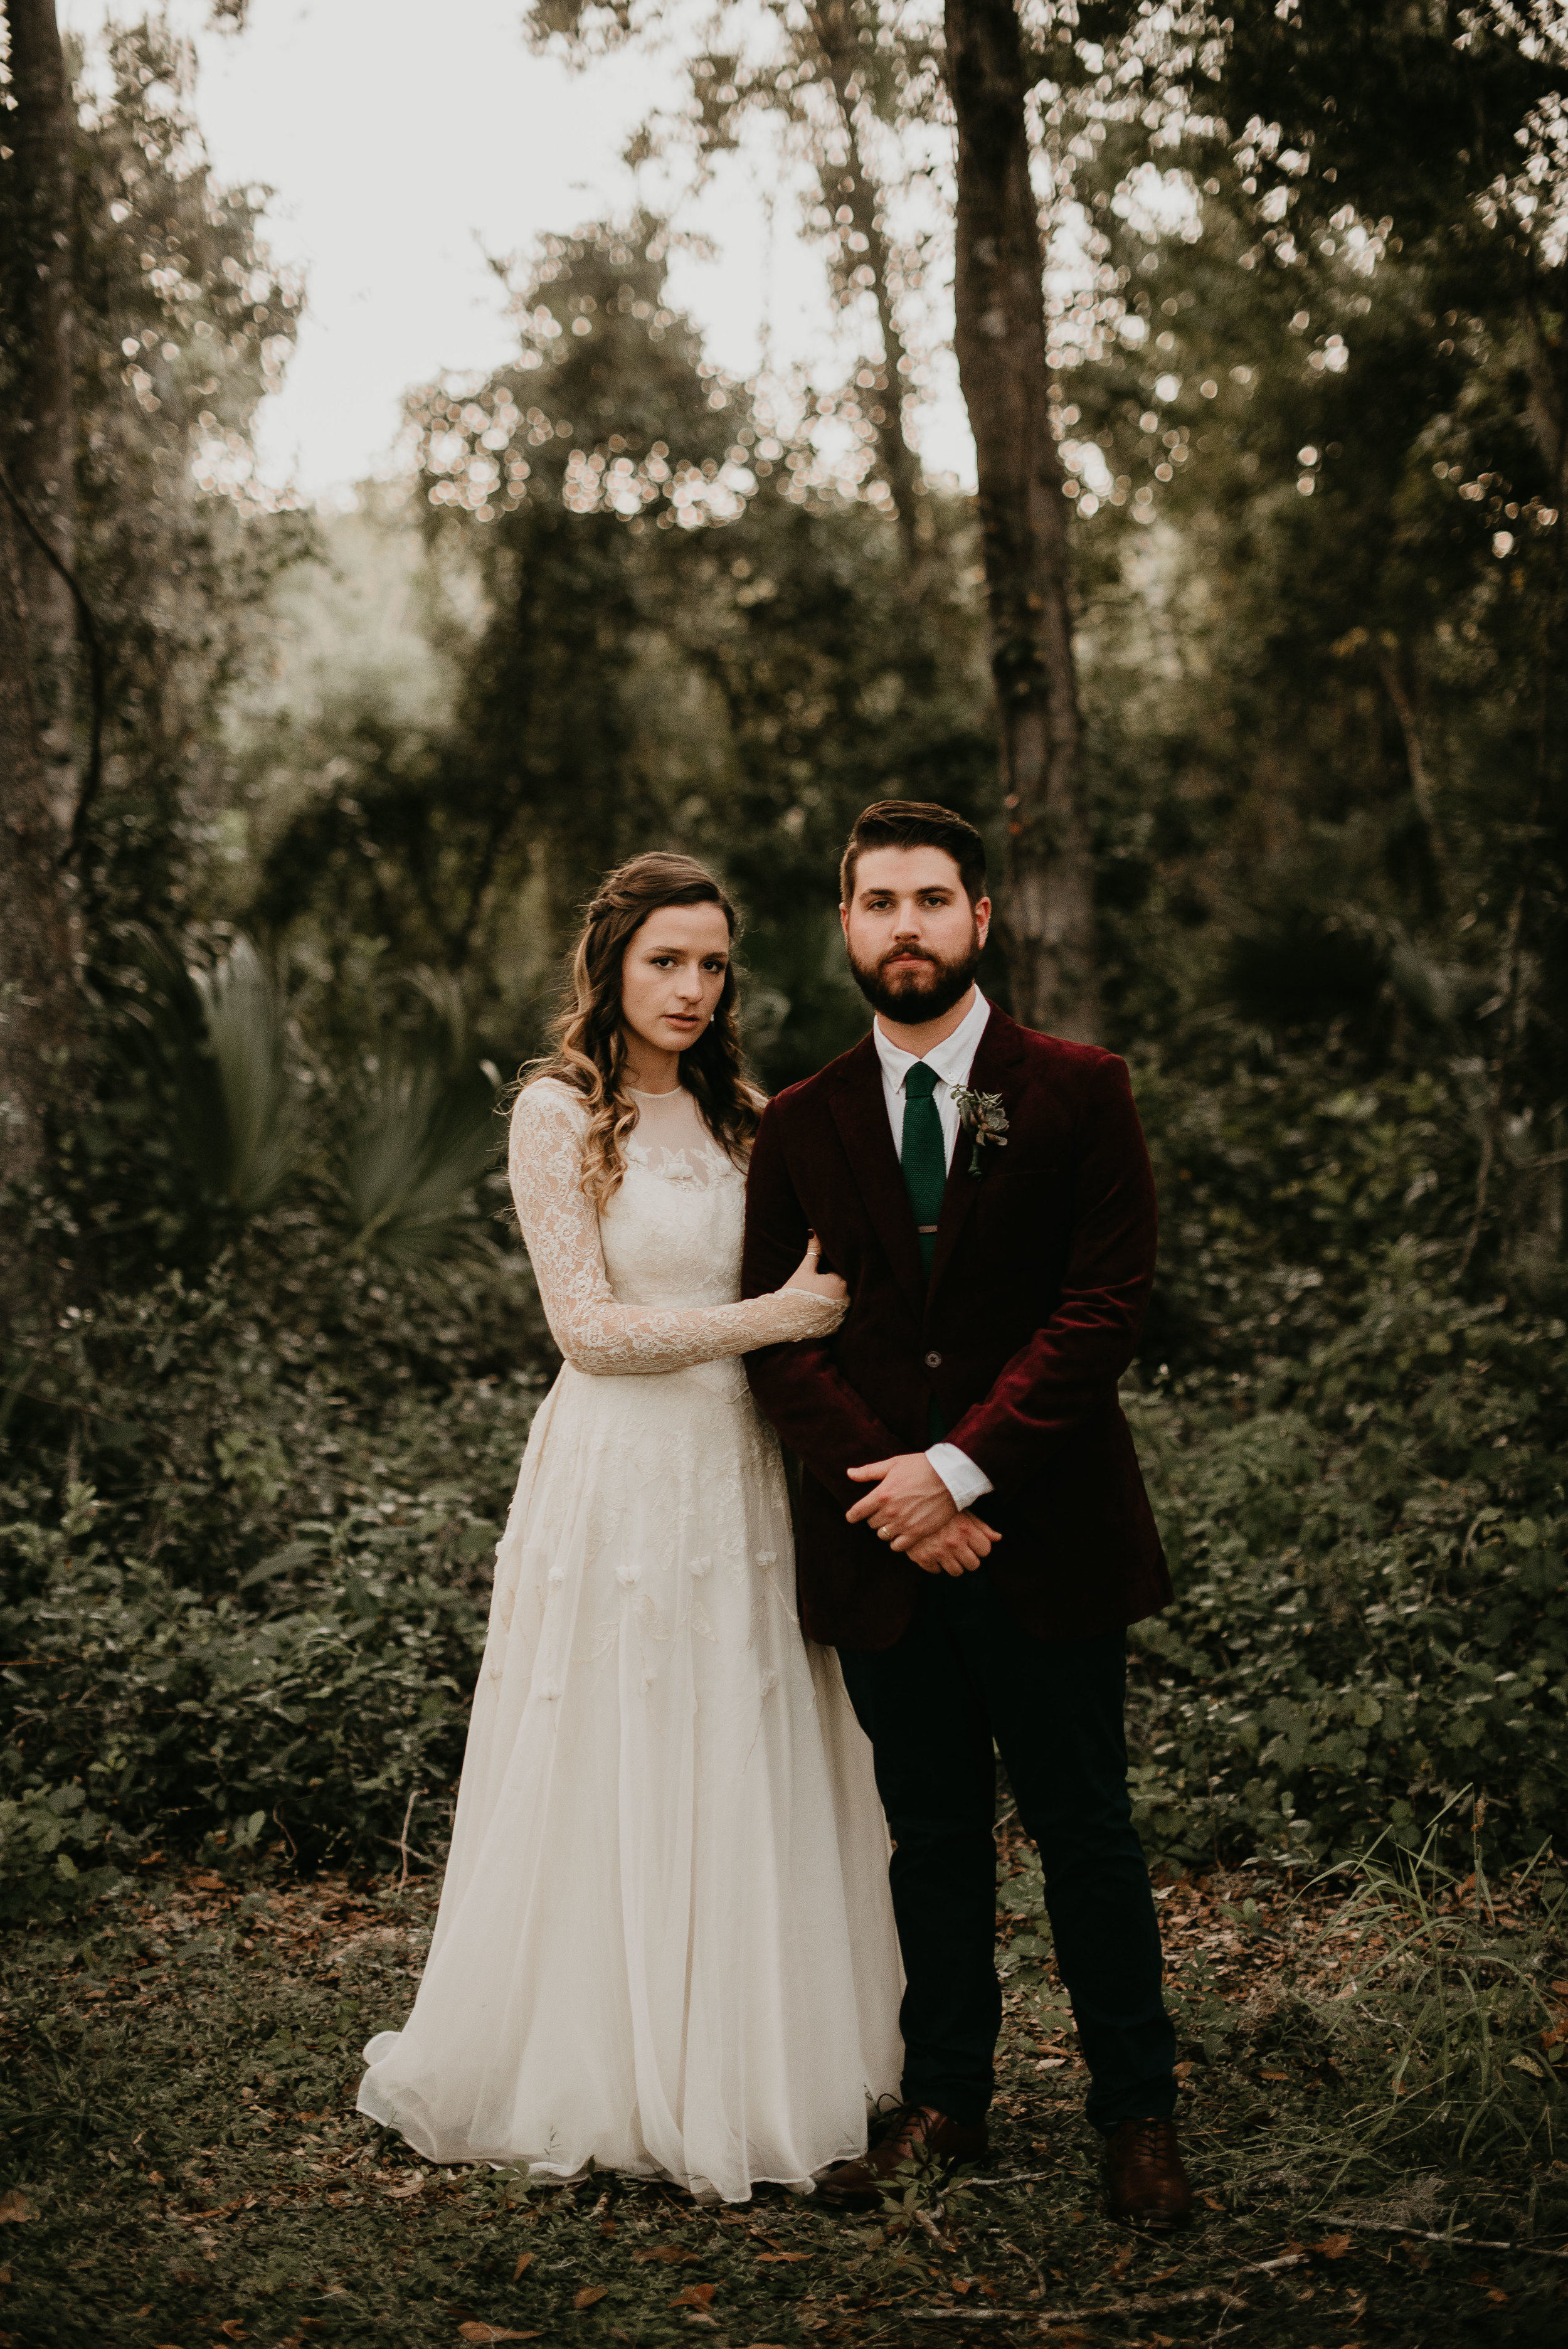 Bride and groom in a forest